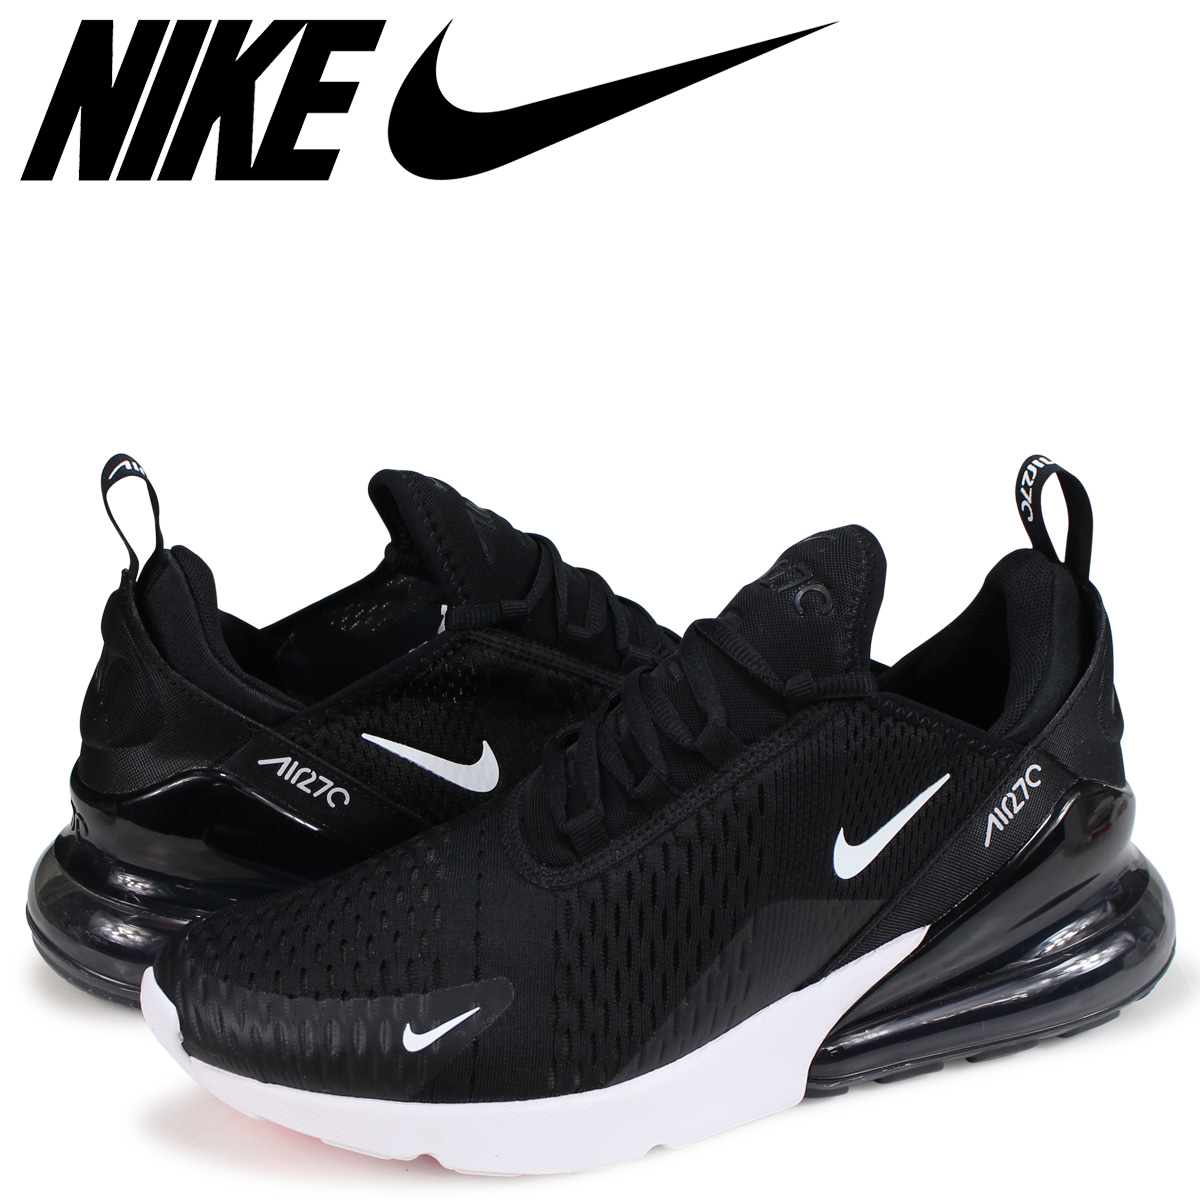 922d41a2bf6c8 NIKE AIR MAX 270 Kie Ney AMAX 270 sneakers men AH8050-002 black [the ...